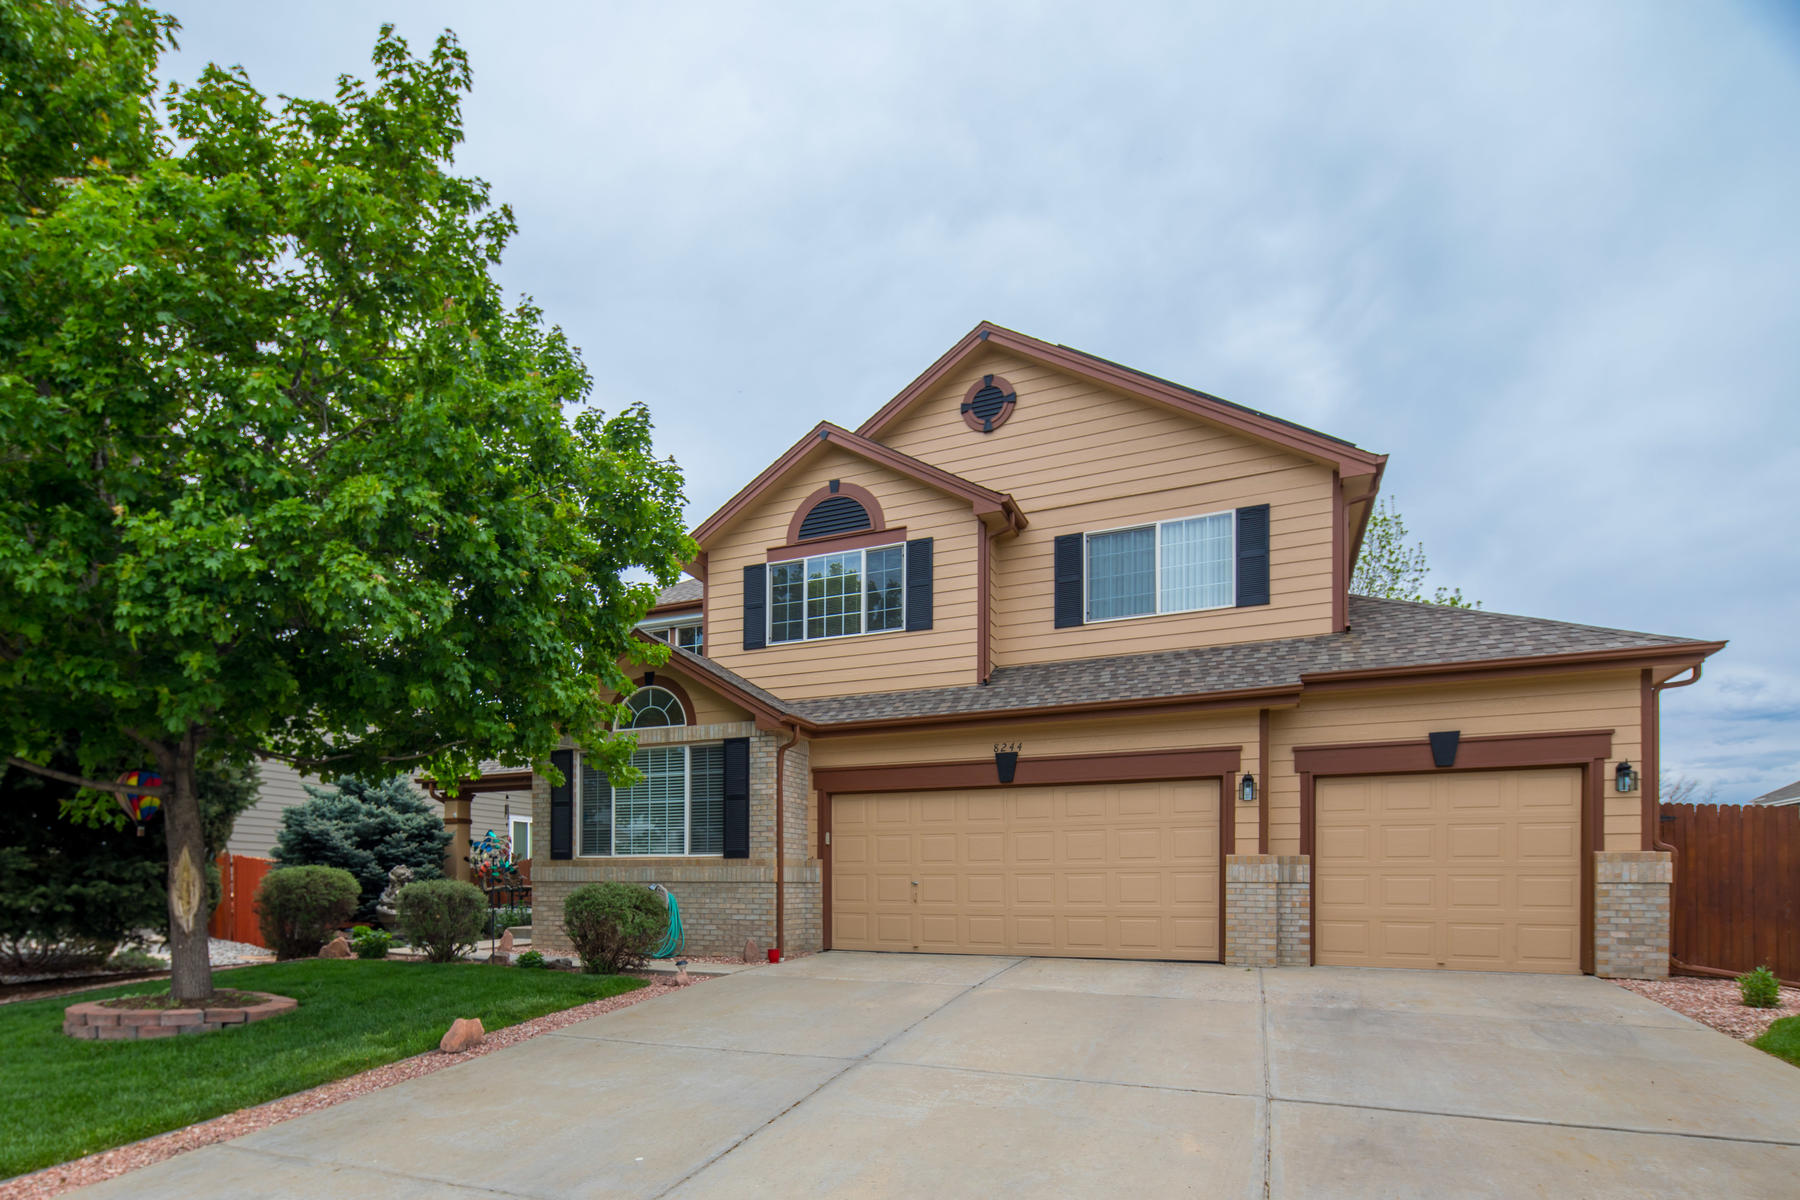 Single Family Homes for Sale at Perfect home for the active family. 8244 Swadley St Arvada, Colorado 80005 United States